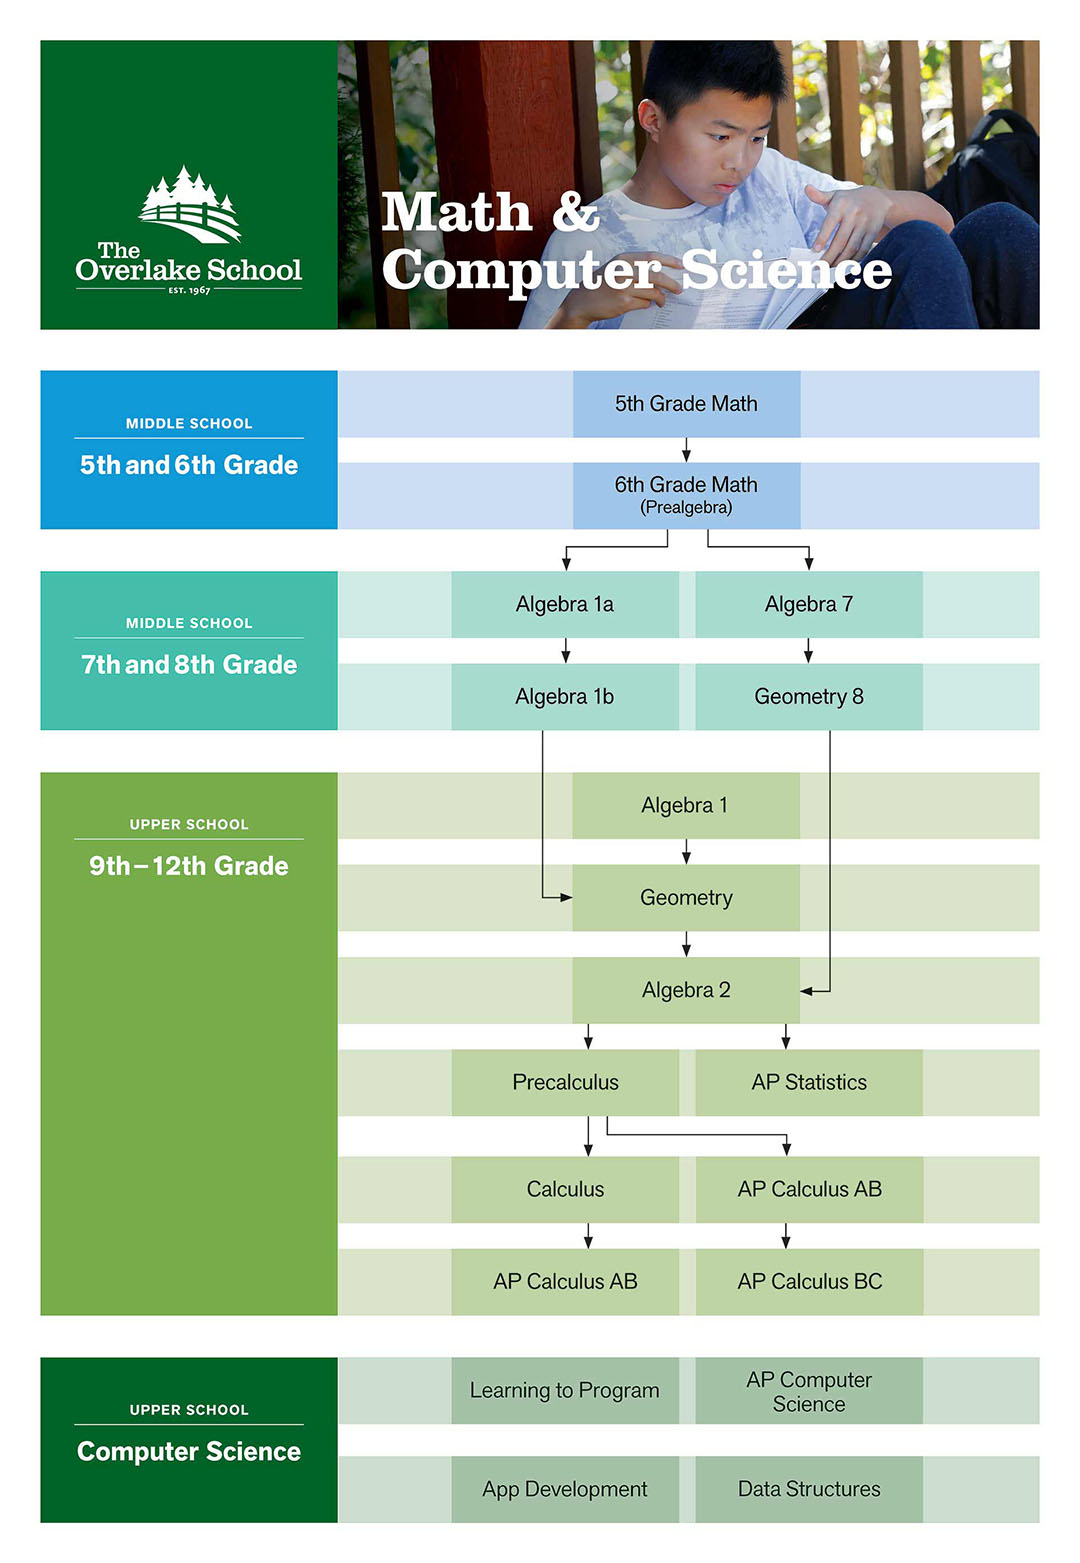 Mathematics & Computer Science | The Overlake School